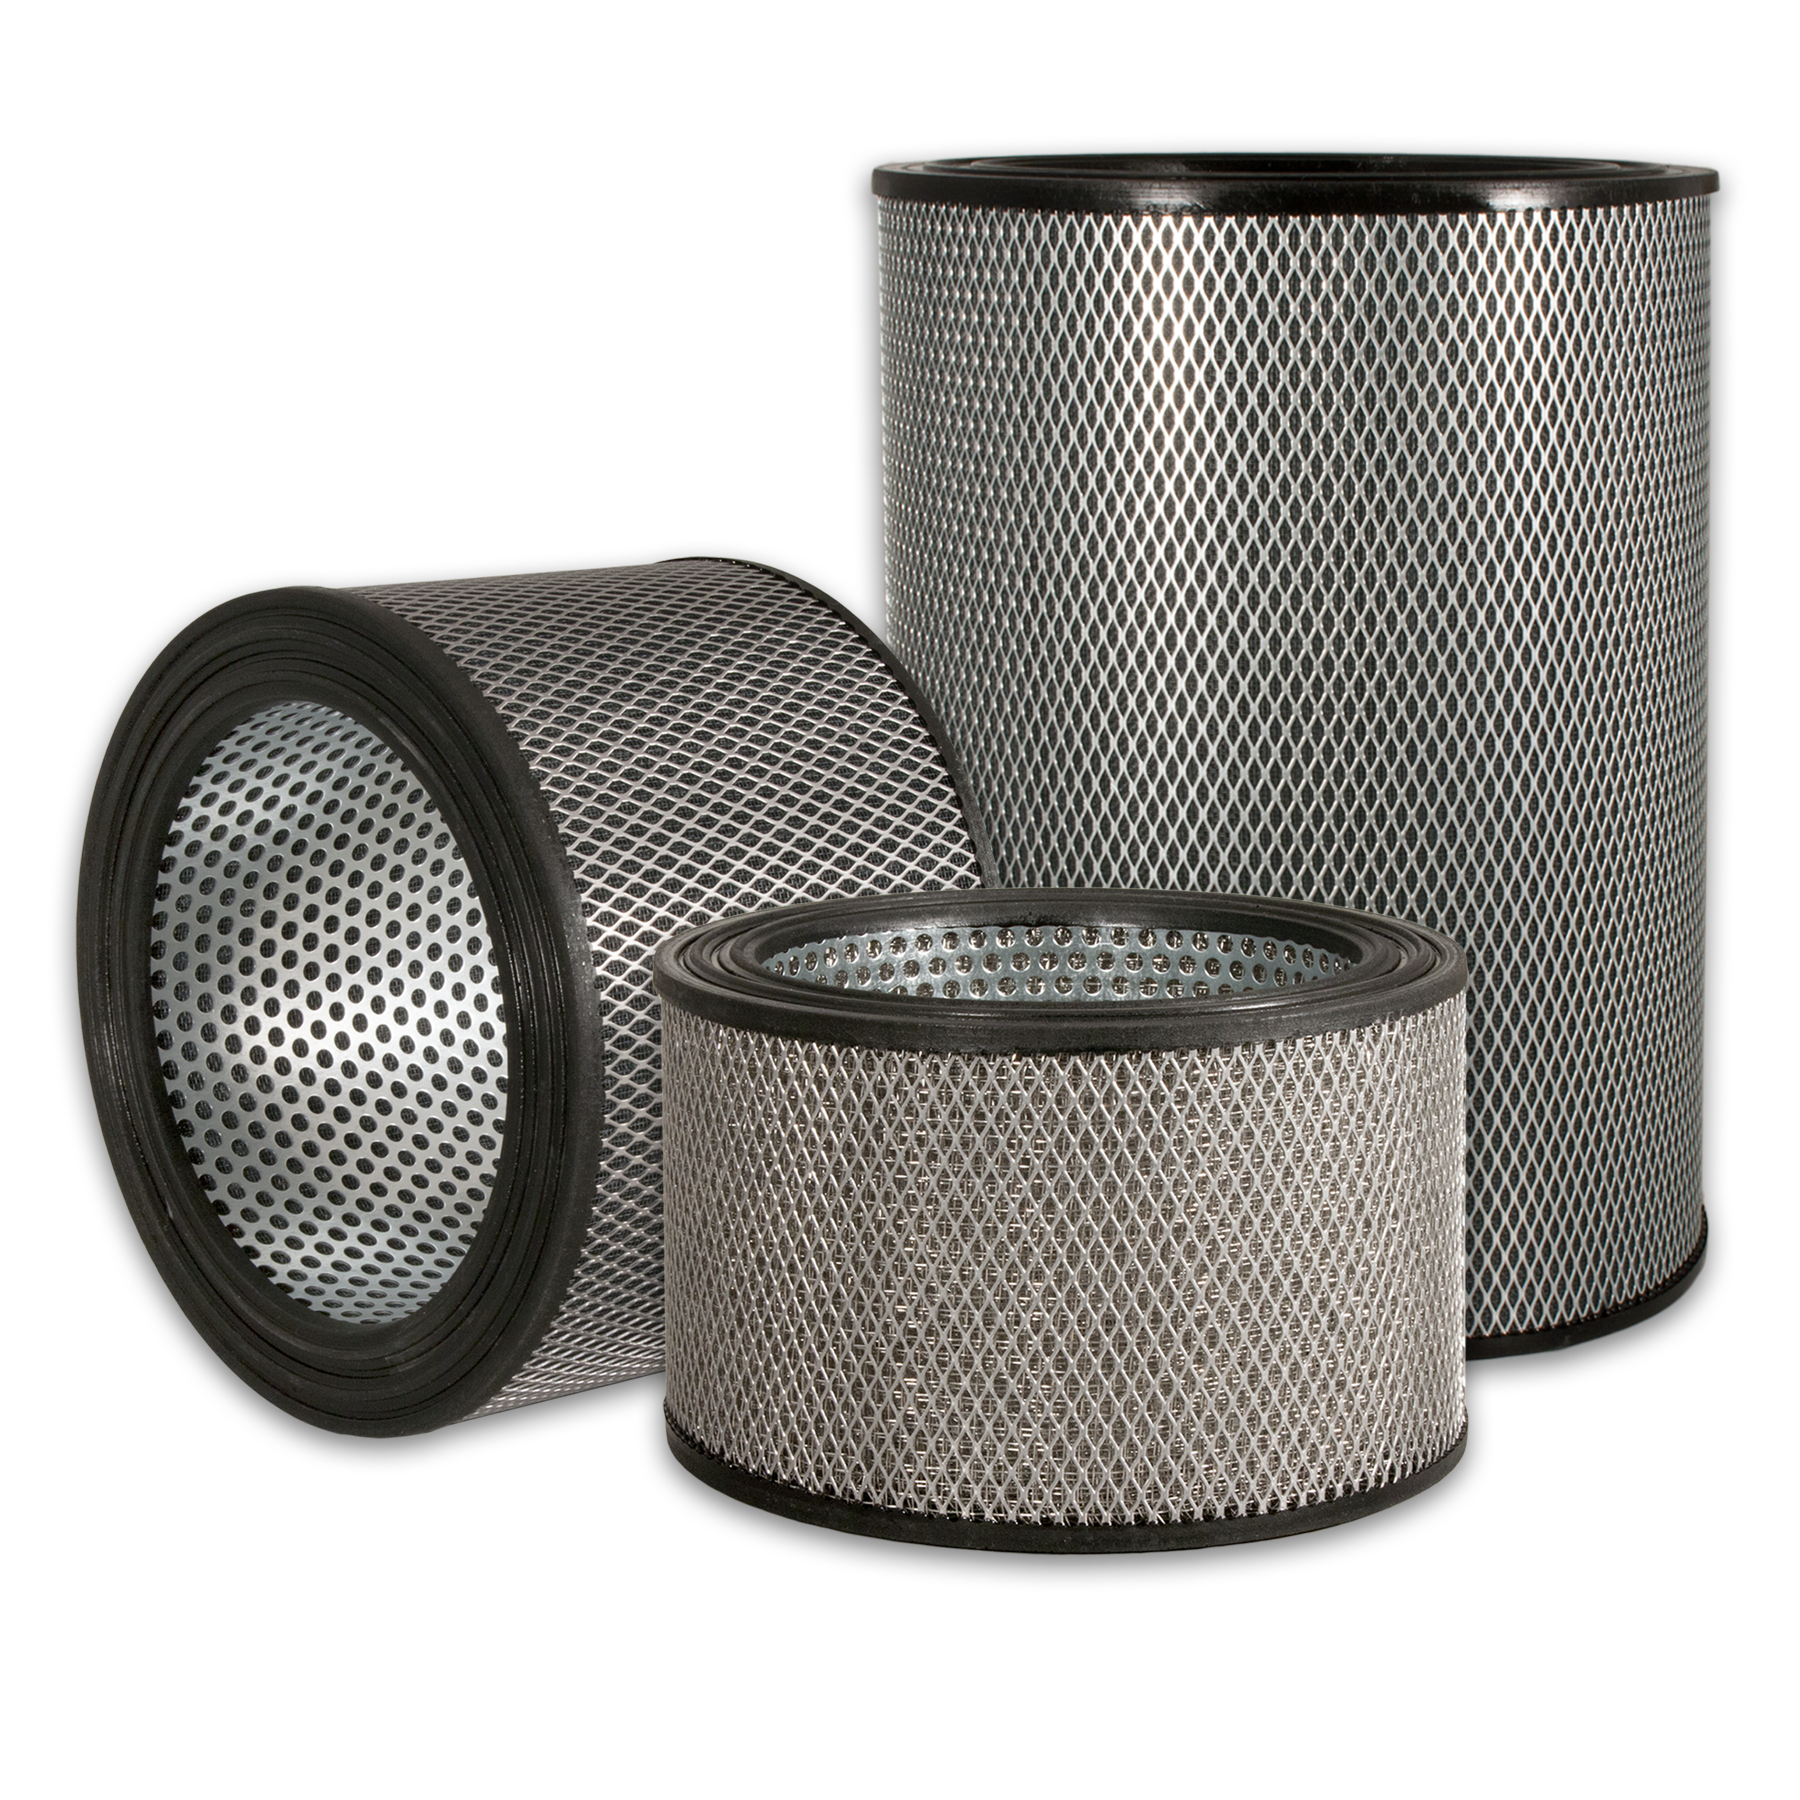 Industrial wire mesh filters from Sidco Filter to replace Shawndra Sparks, Airmaze, Consler, Endustra, Filpro, Ingersoll Rand, Solberg, Sunshine, and Universal filter elements.